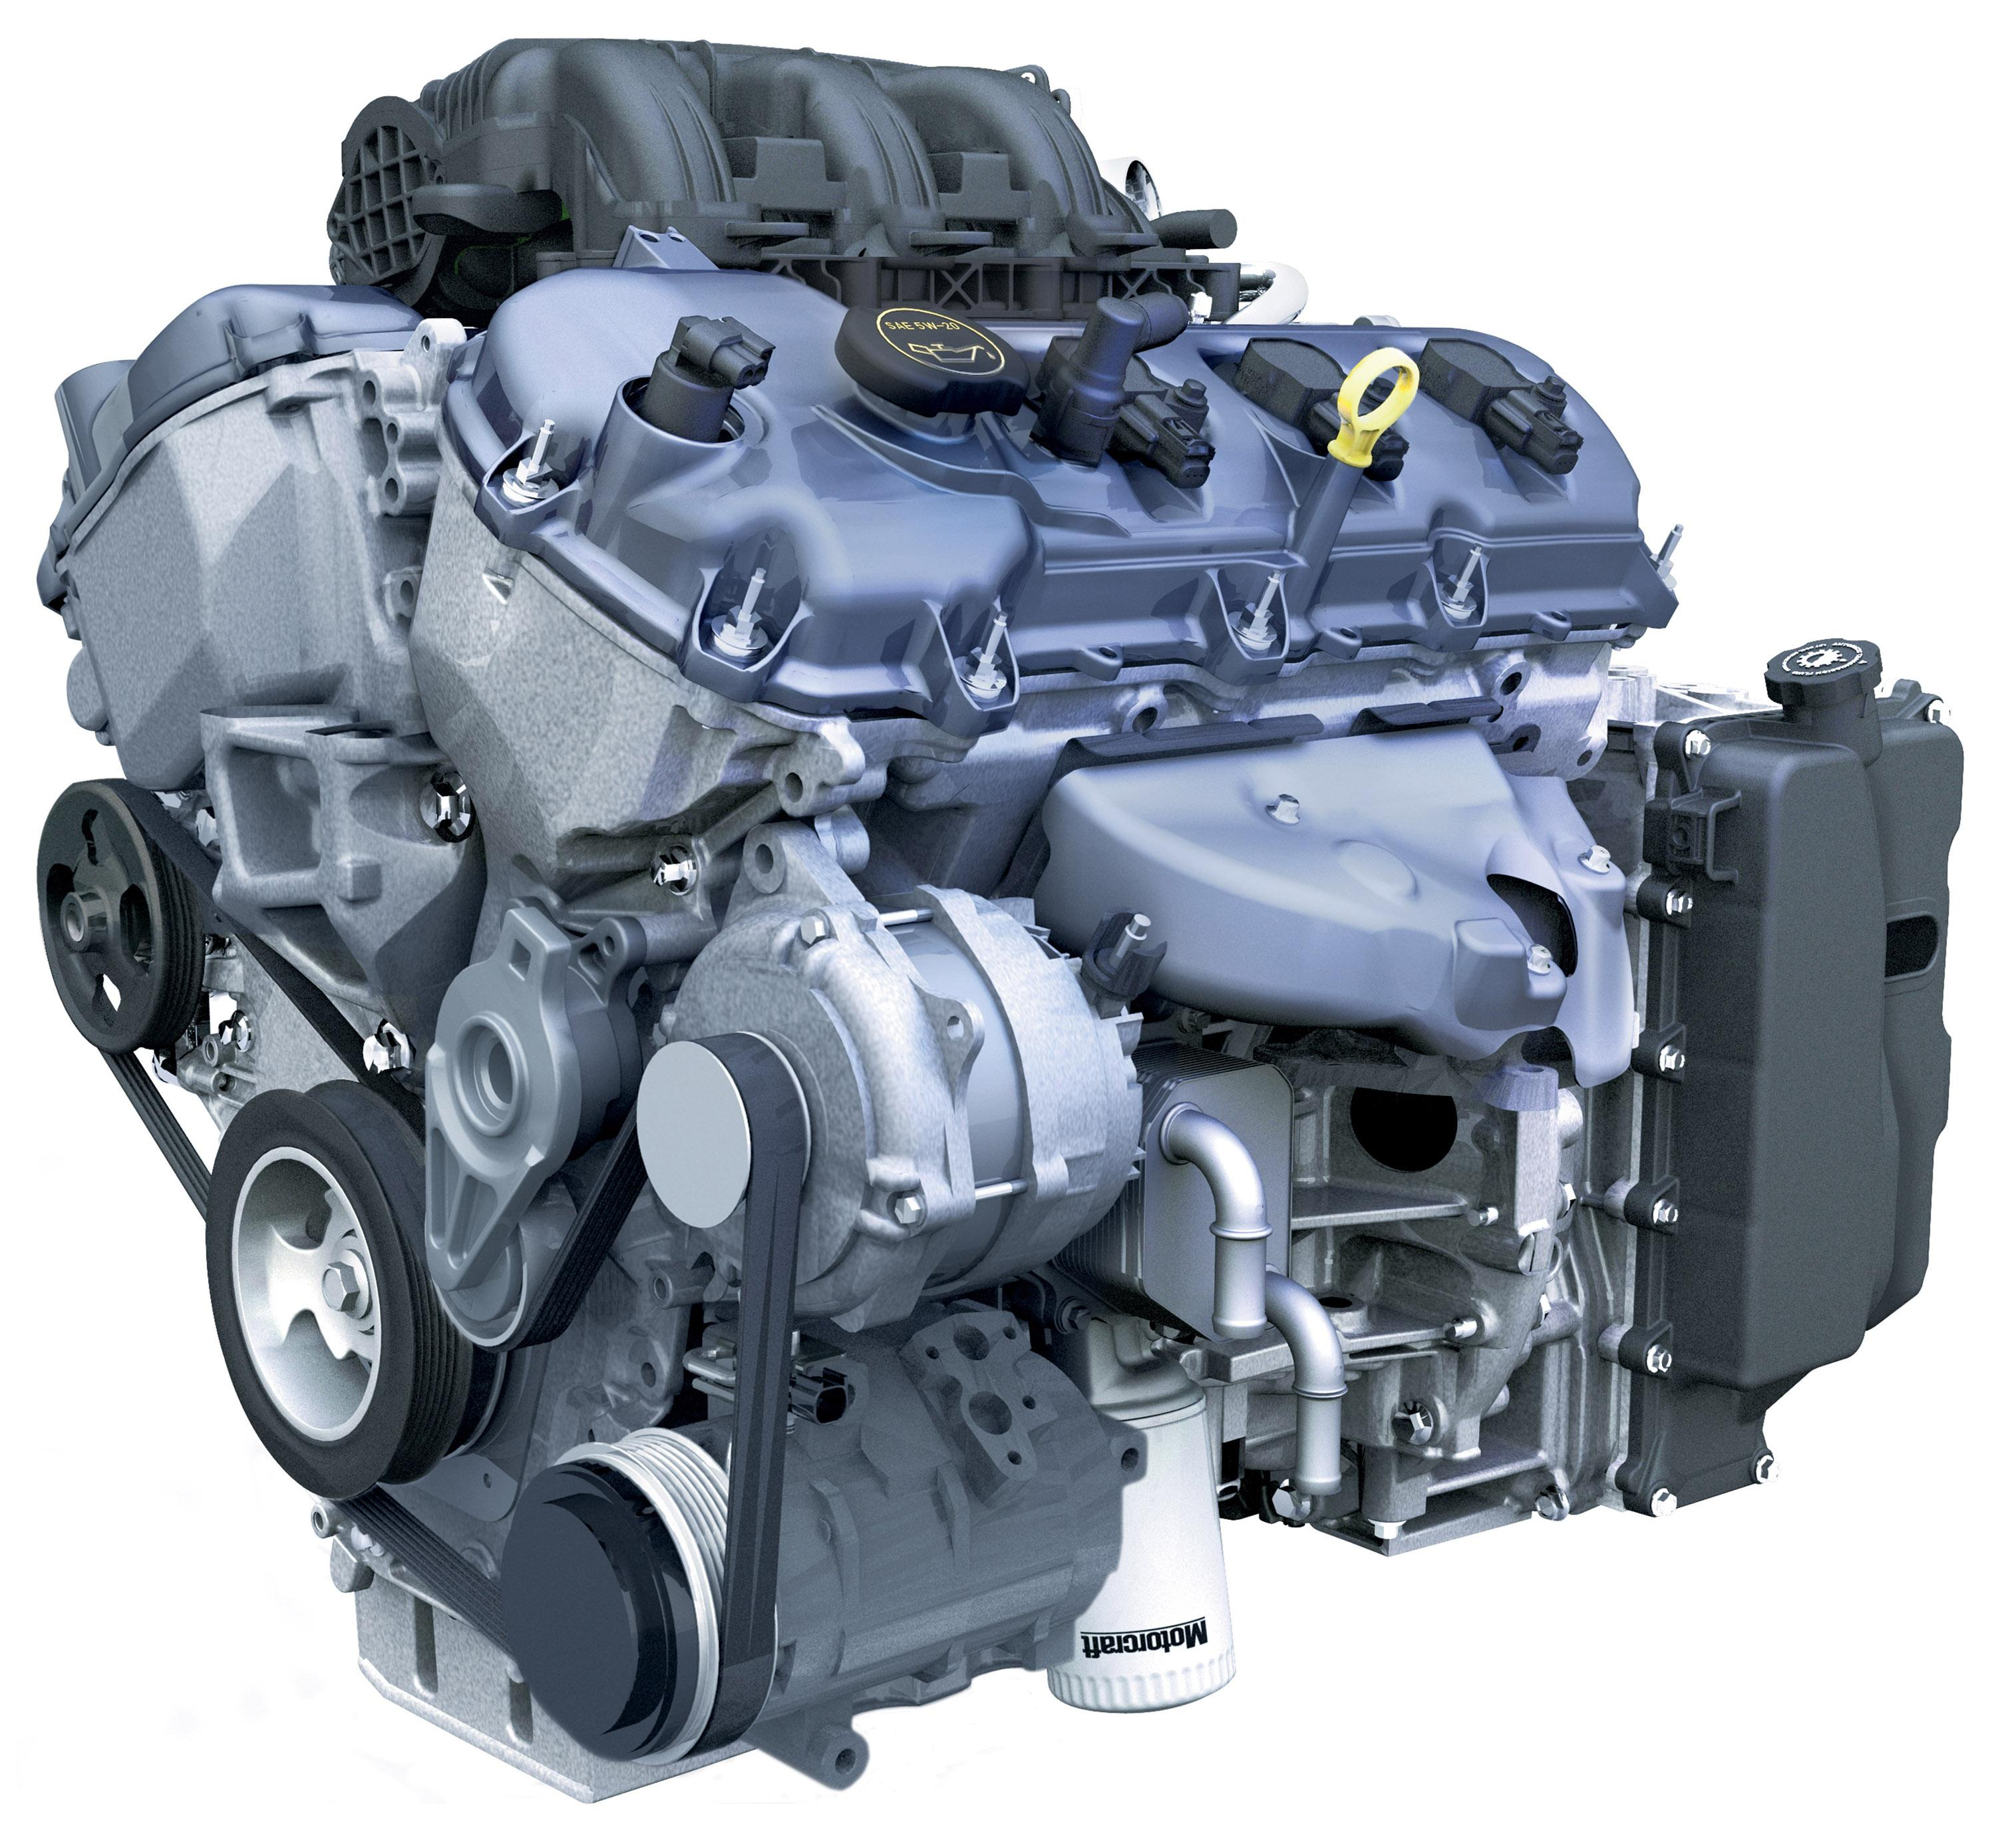 Fords Duratec 35 Engine V6 Top Speed Ford Five Hundred Diagram